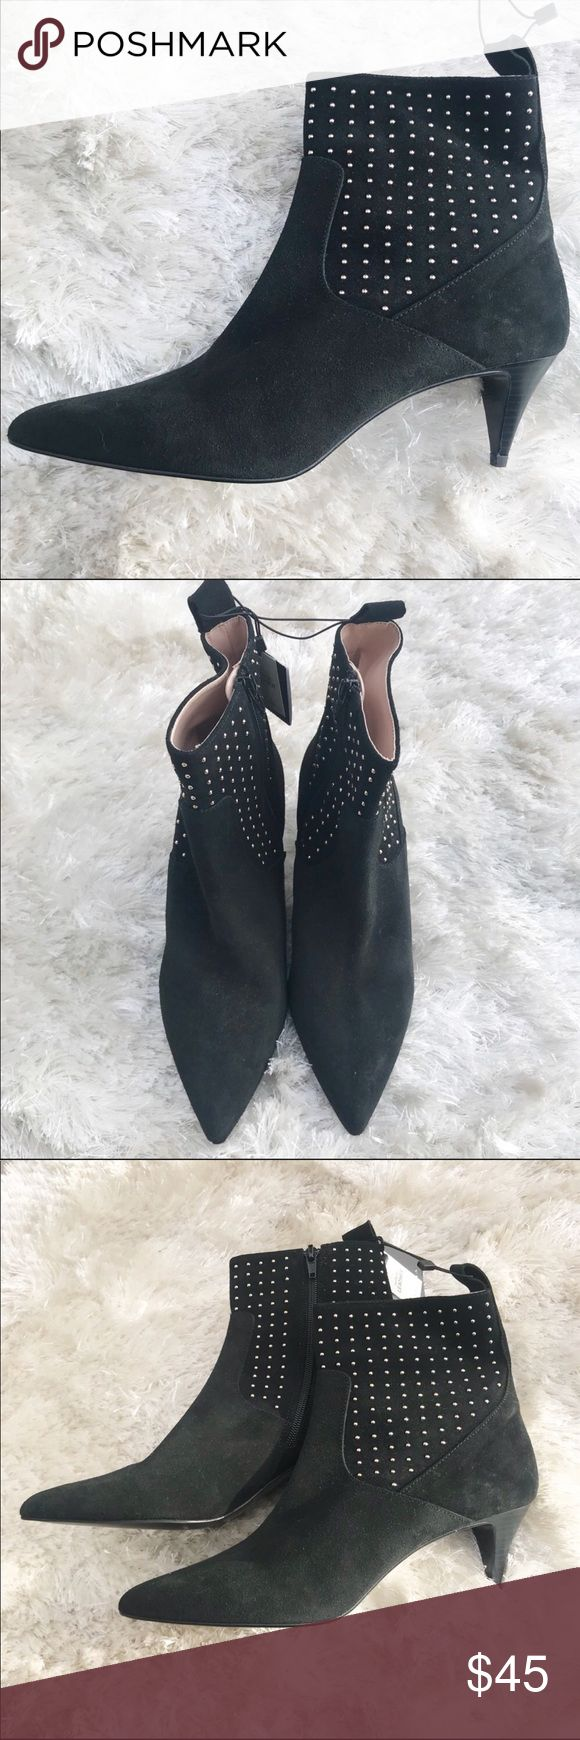 NWT    ZARA Silver Stud Ankle Boots Zara Elastic Black Leather Suede Booties with silver stud Detail. Sizes 39 (8) and 41 (10) available. Please see Zara size chart prior to purchase. New with tags. Zara Shoes Ankle Boots & Booties